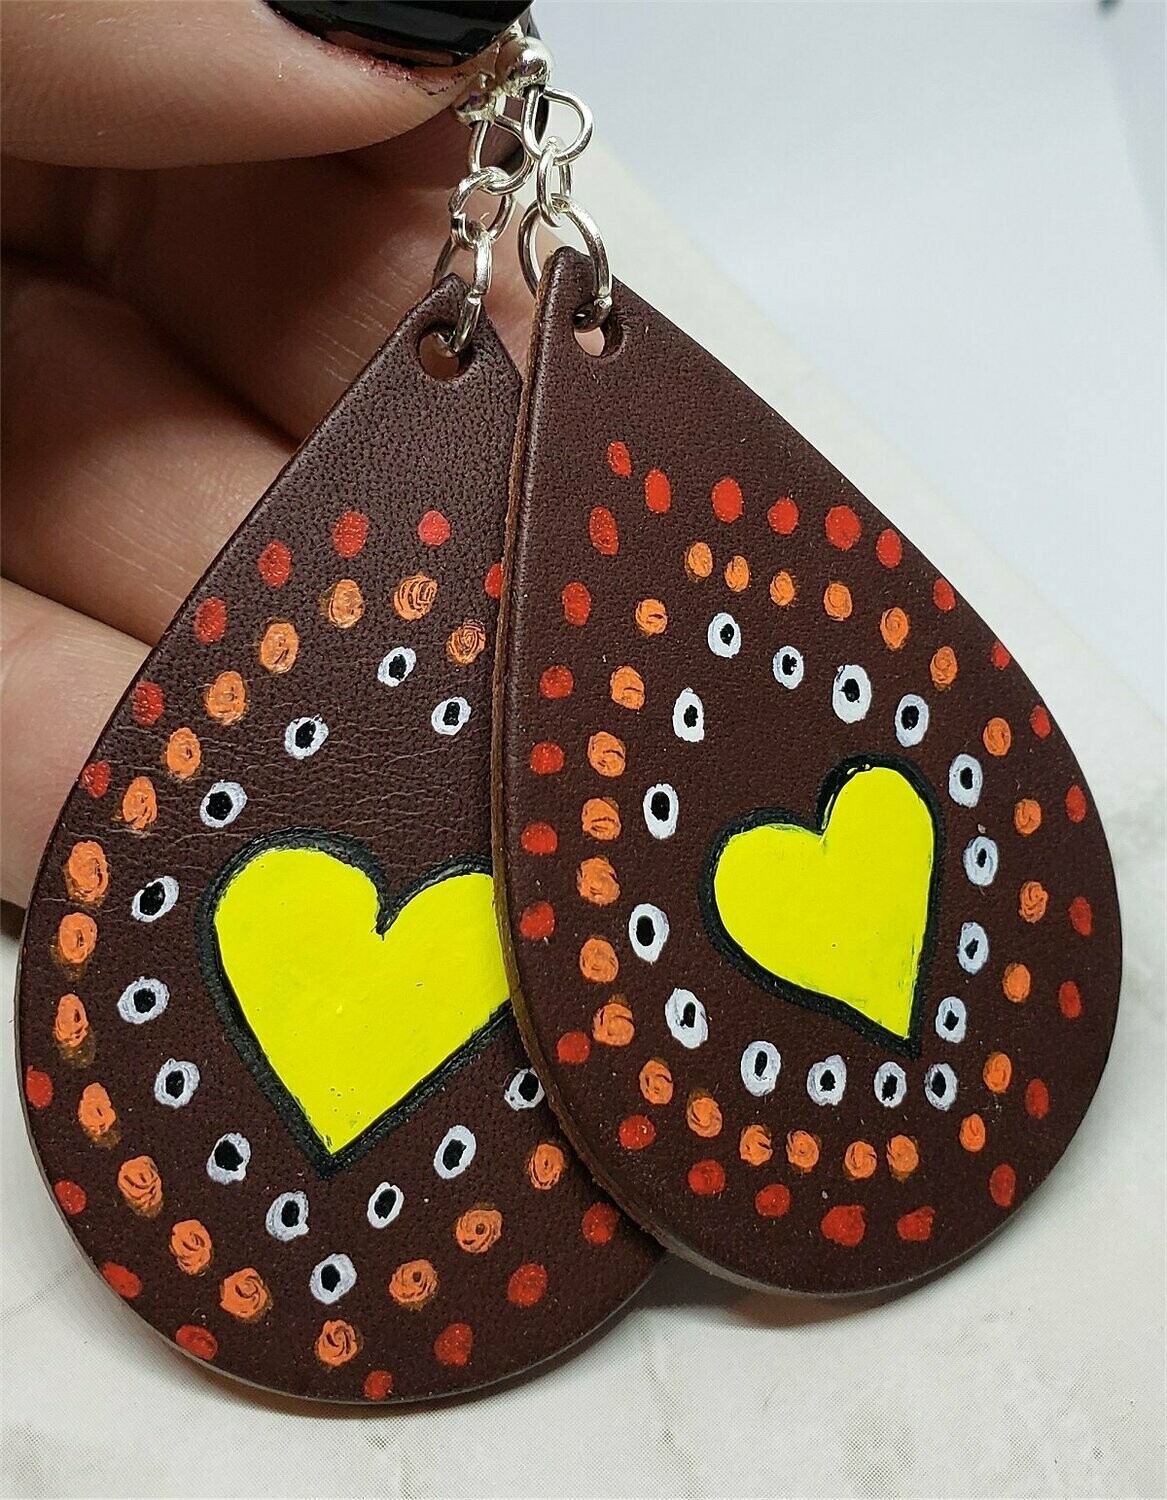 Aboriginal Style Dot Art Hand Painted Vegetable Tanned Real Brown Leather Teardrop Shaped Earrings